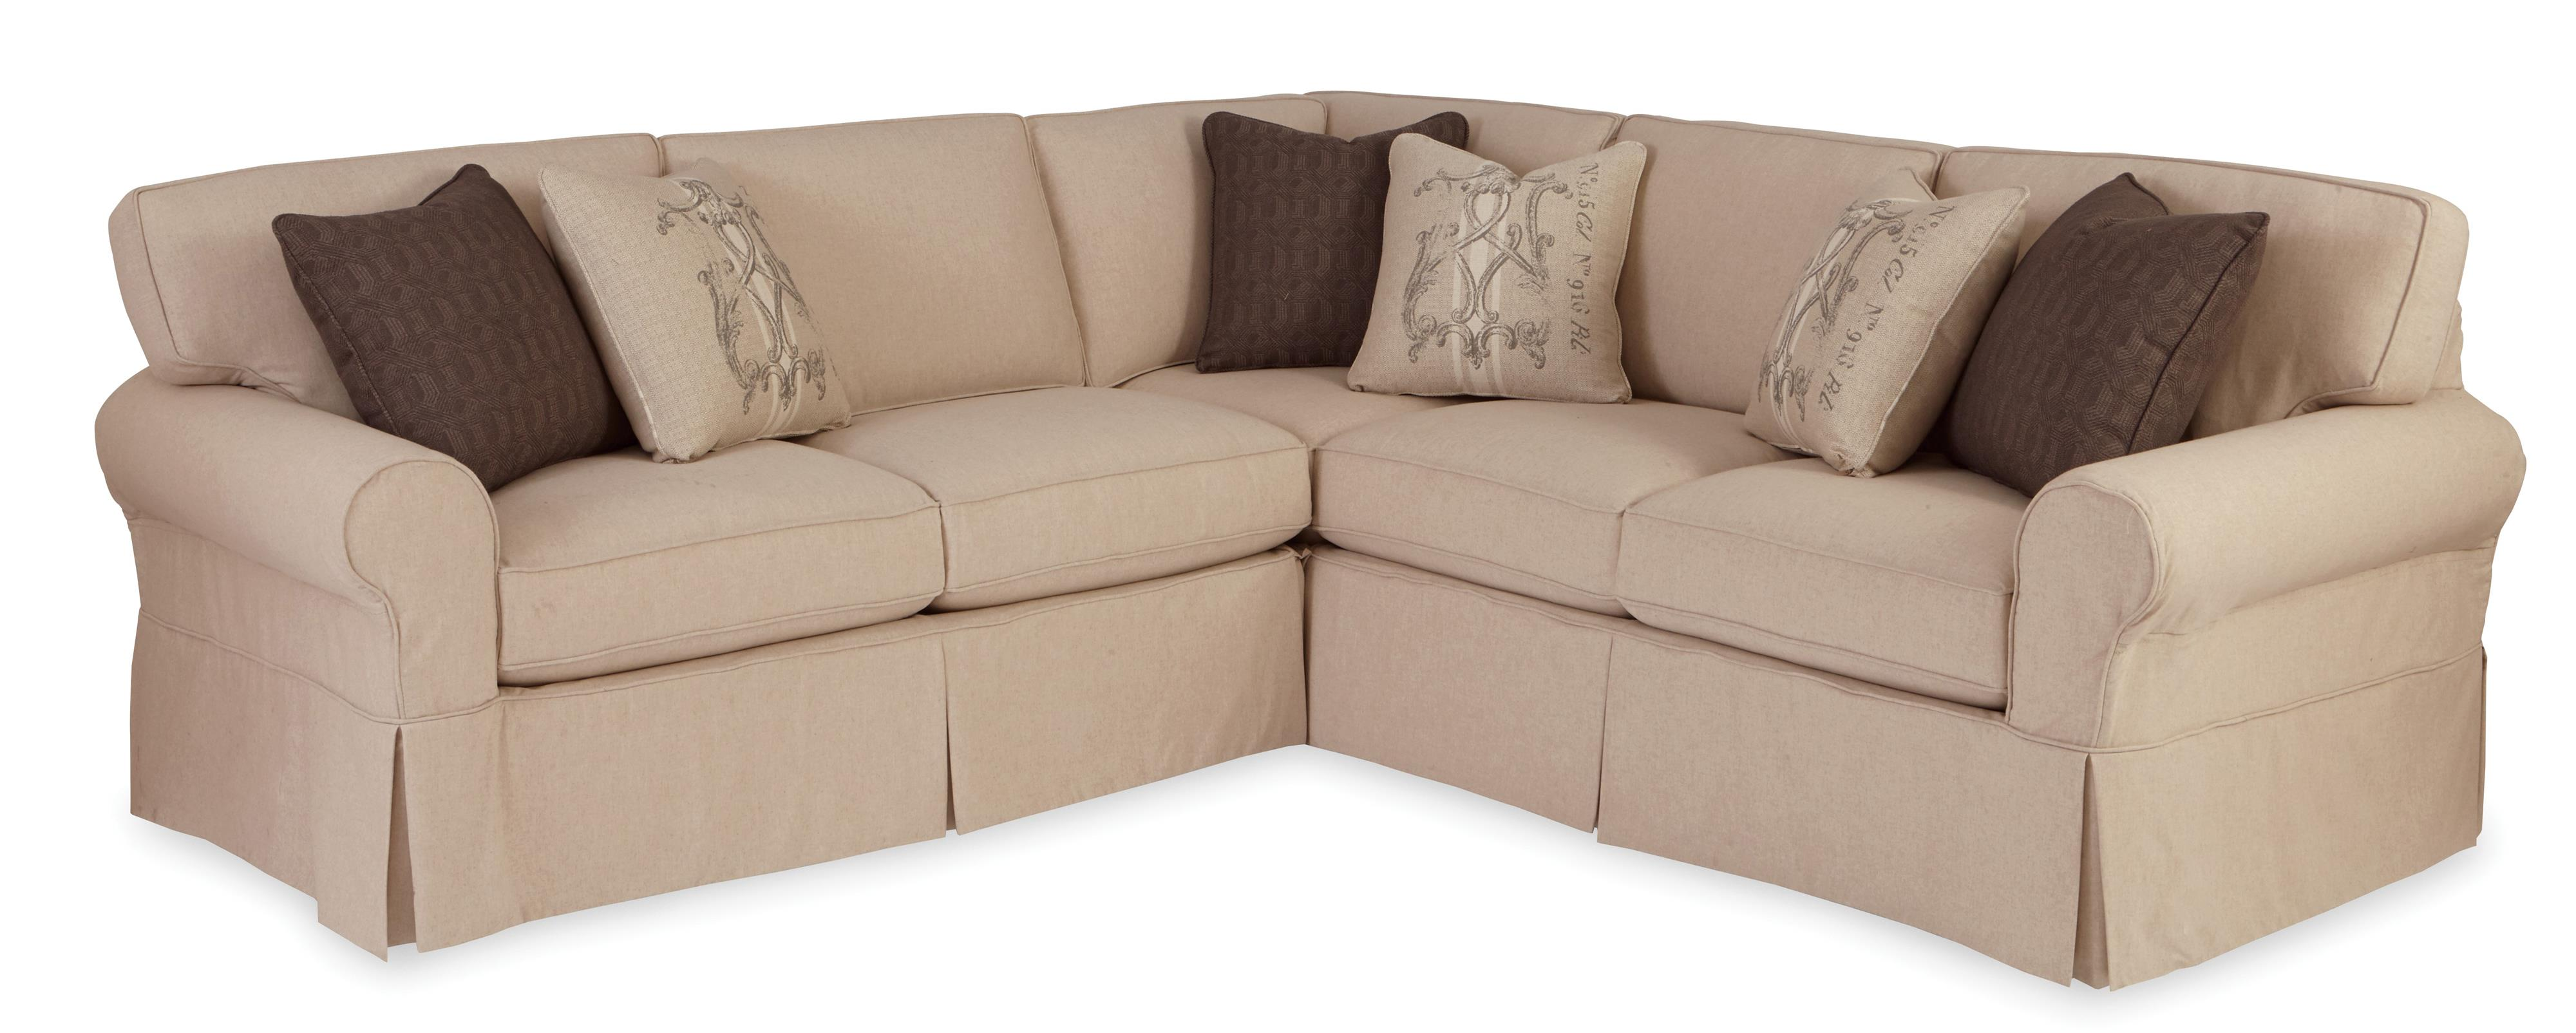 Two piece slipcovered sectional sofa with raf return sofa for Sectional sofa or two sofas